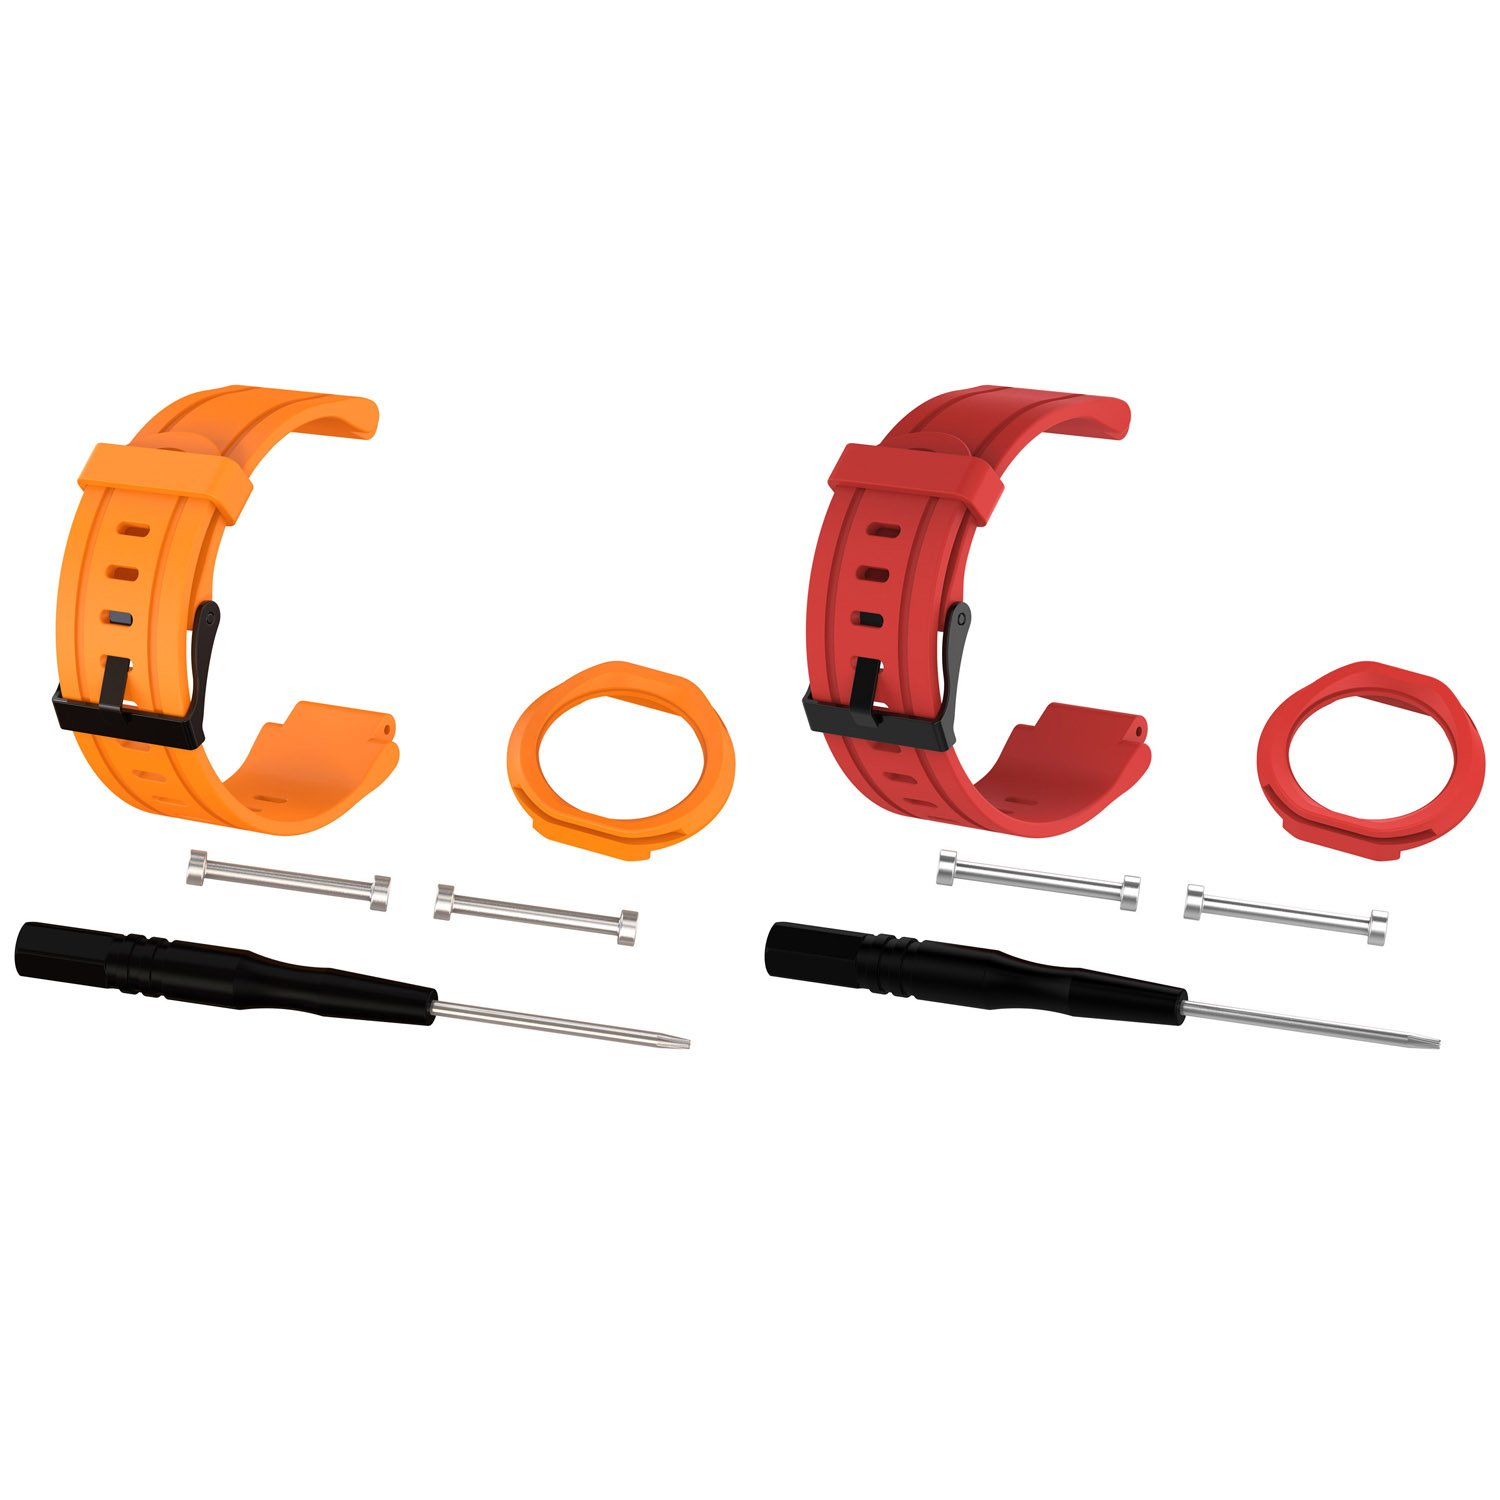 2pcs for Forerunner 225時計バンド、交換用ストラップバンドfor Garmin Forerunner 225 GPS Running Watch  Orange+Red B076JC2CHW